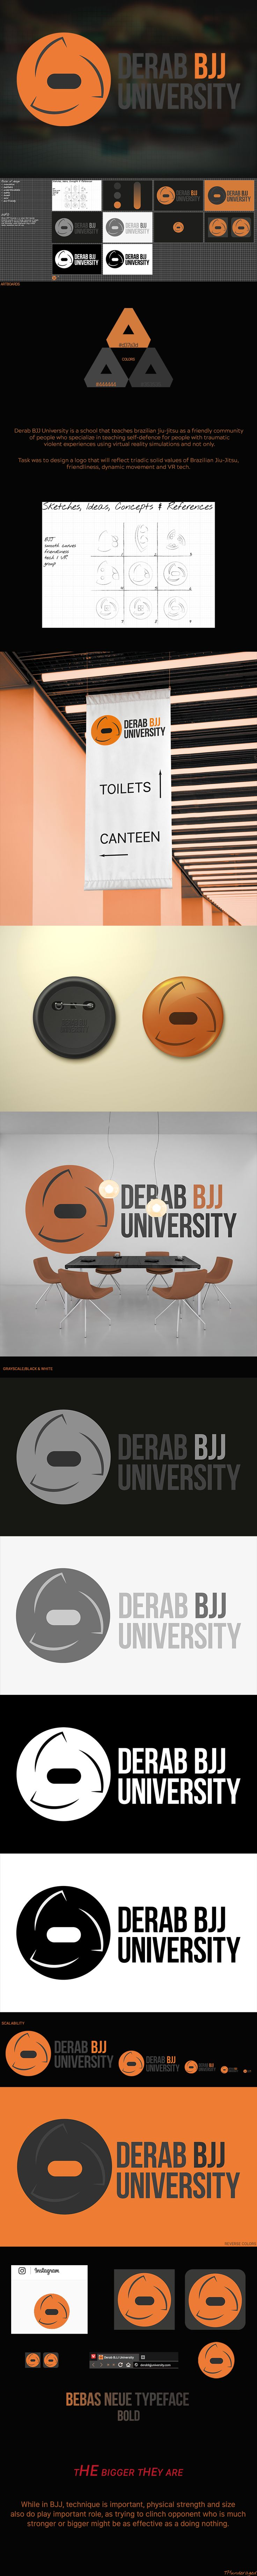 Derab BJJ University is a school that teaches Brazilian jiu-jitsu as a friendly community of people who specialize in teaching self-defense for people with traumatic violent experiences using virtual reality simulations and not only.  Follow if you want to see more!  #simplelogo #university #martial #arts #bjj #brazilian #jiujitsu #grayscale #orange #grey #black #selfdefense #derab #sketches #vr #trauma #school #training